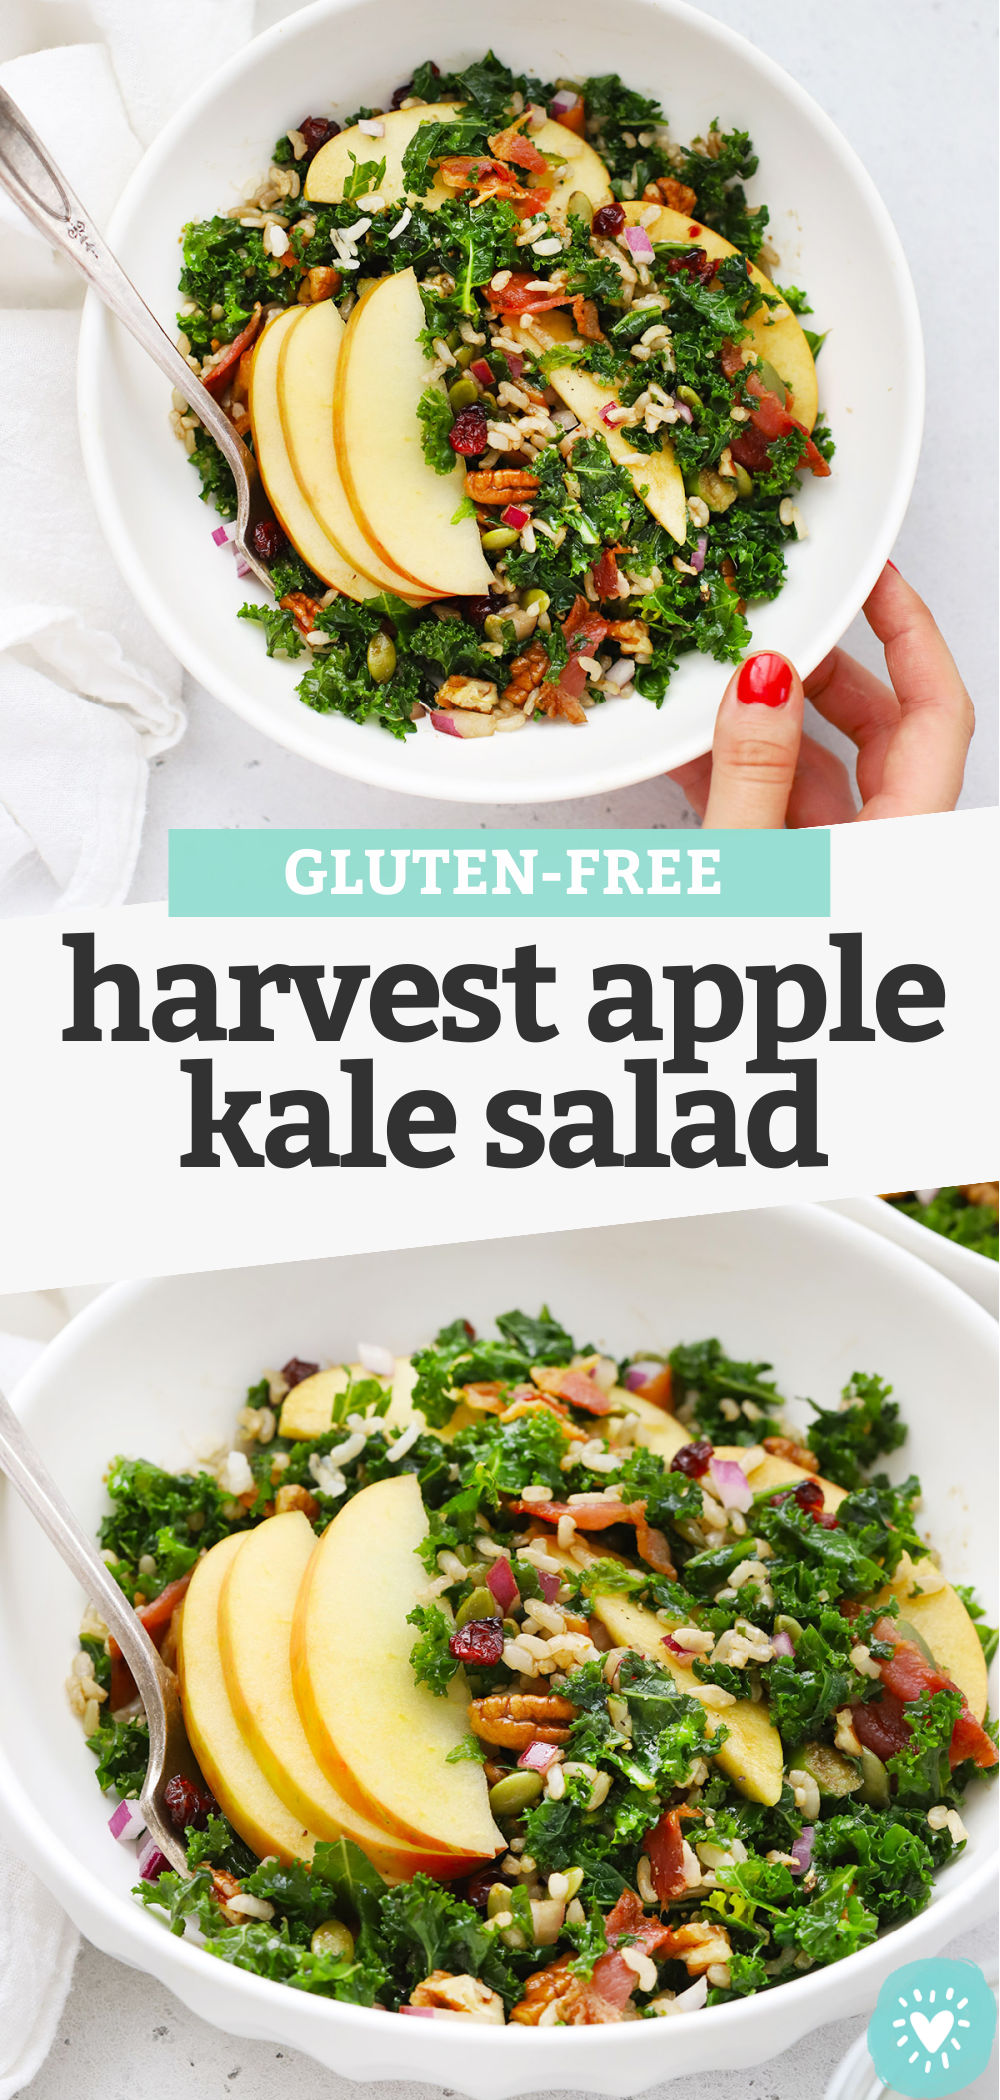 "Collage of images of Harvest Apple Kale Salad with text overlay that reads ""Gluten-Free Harvest Apple Kale Salad"""